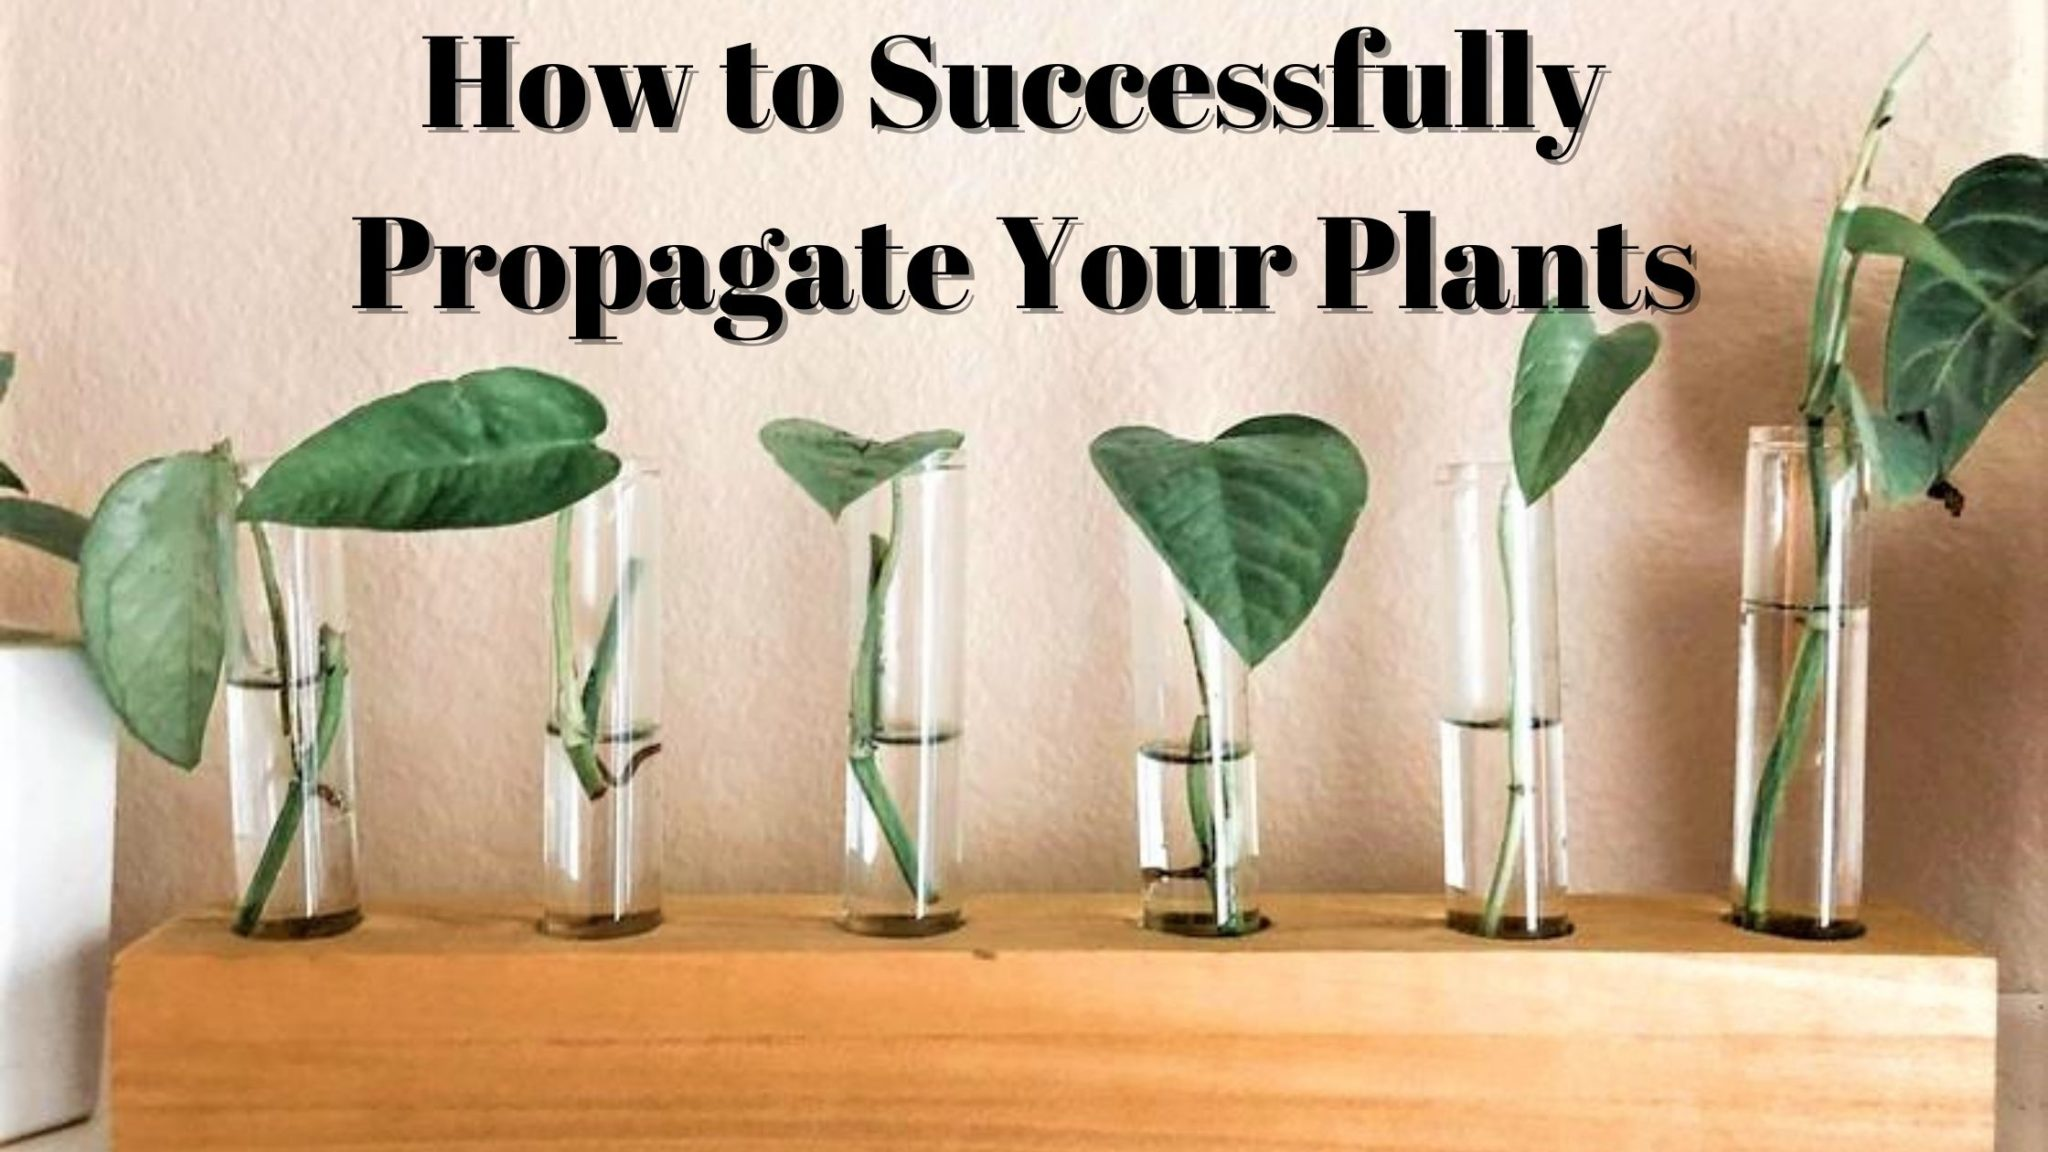 How to Successfully Propagate Your Plants